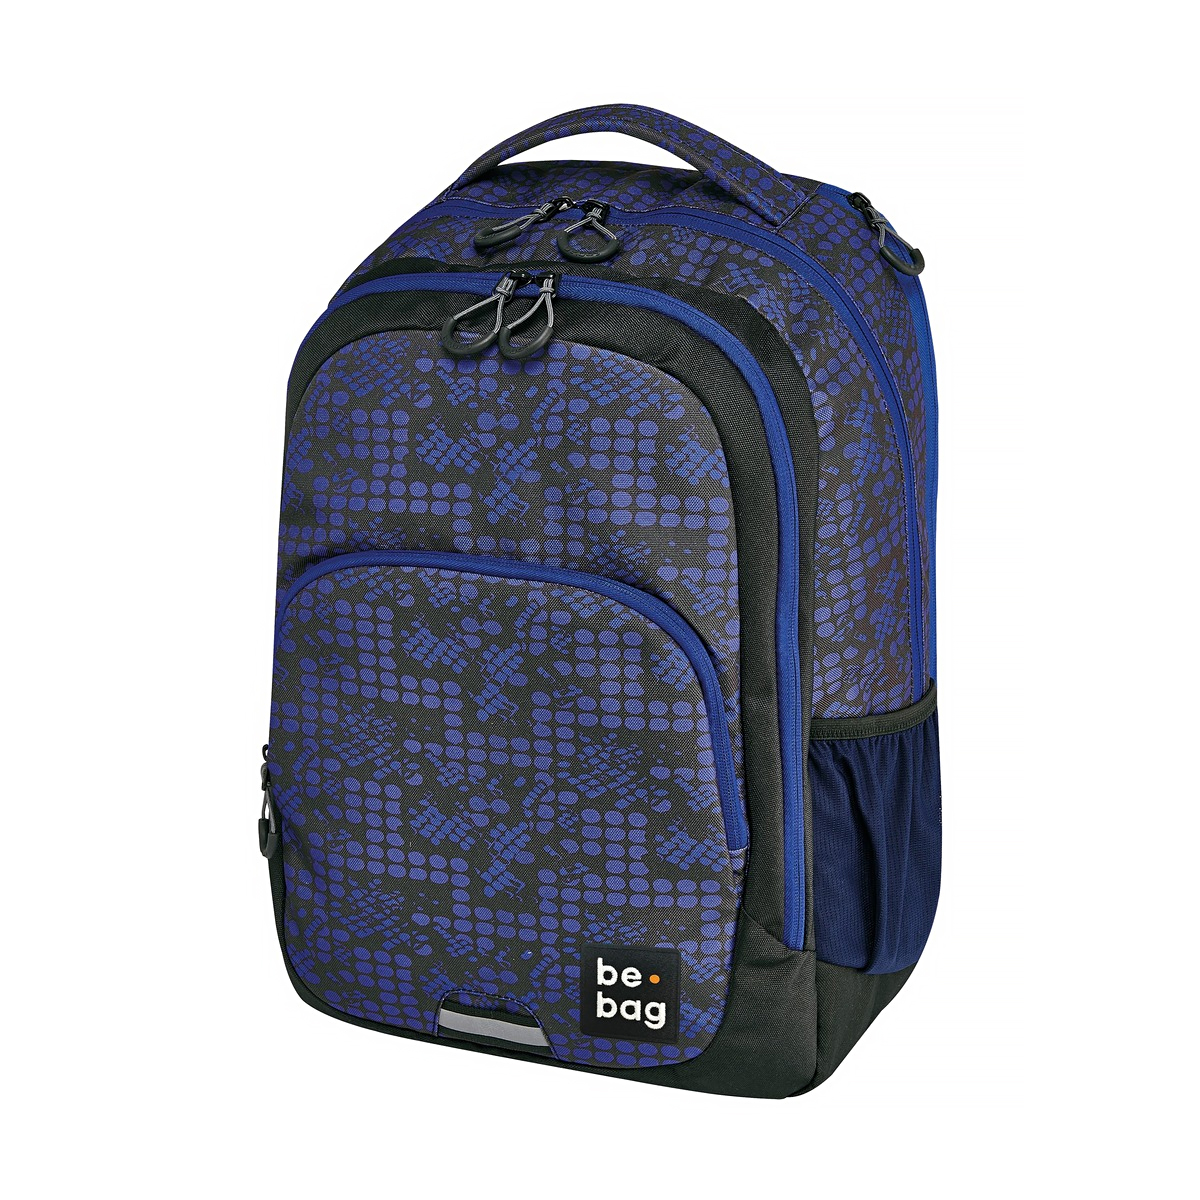 Rucsac Ergonomic Be.Bag, Be.Ready, Smashed Dots, Herlitz, 24800266